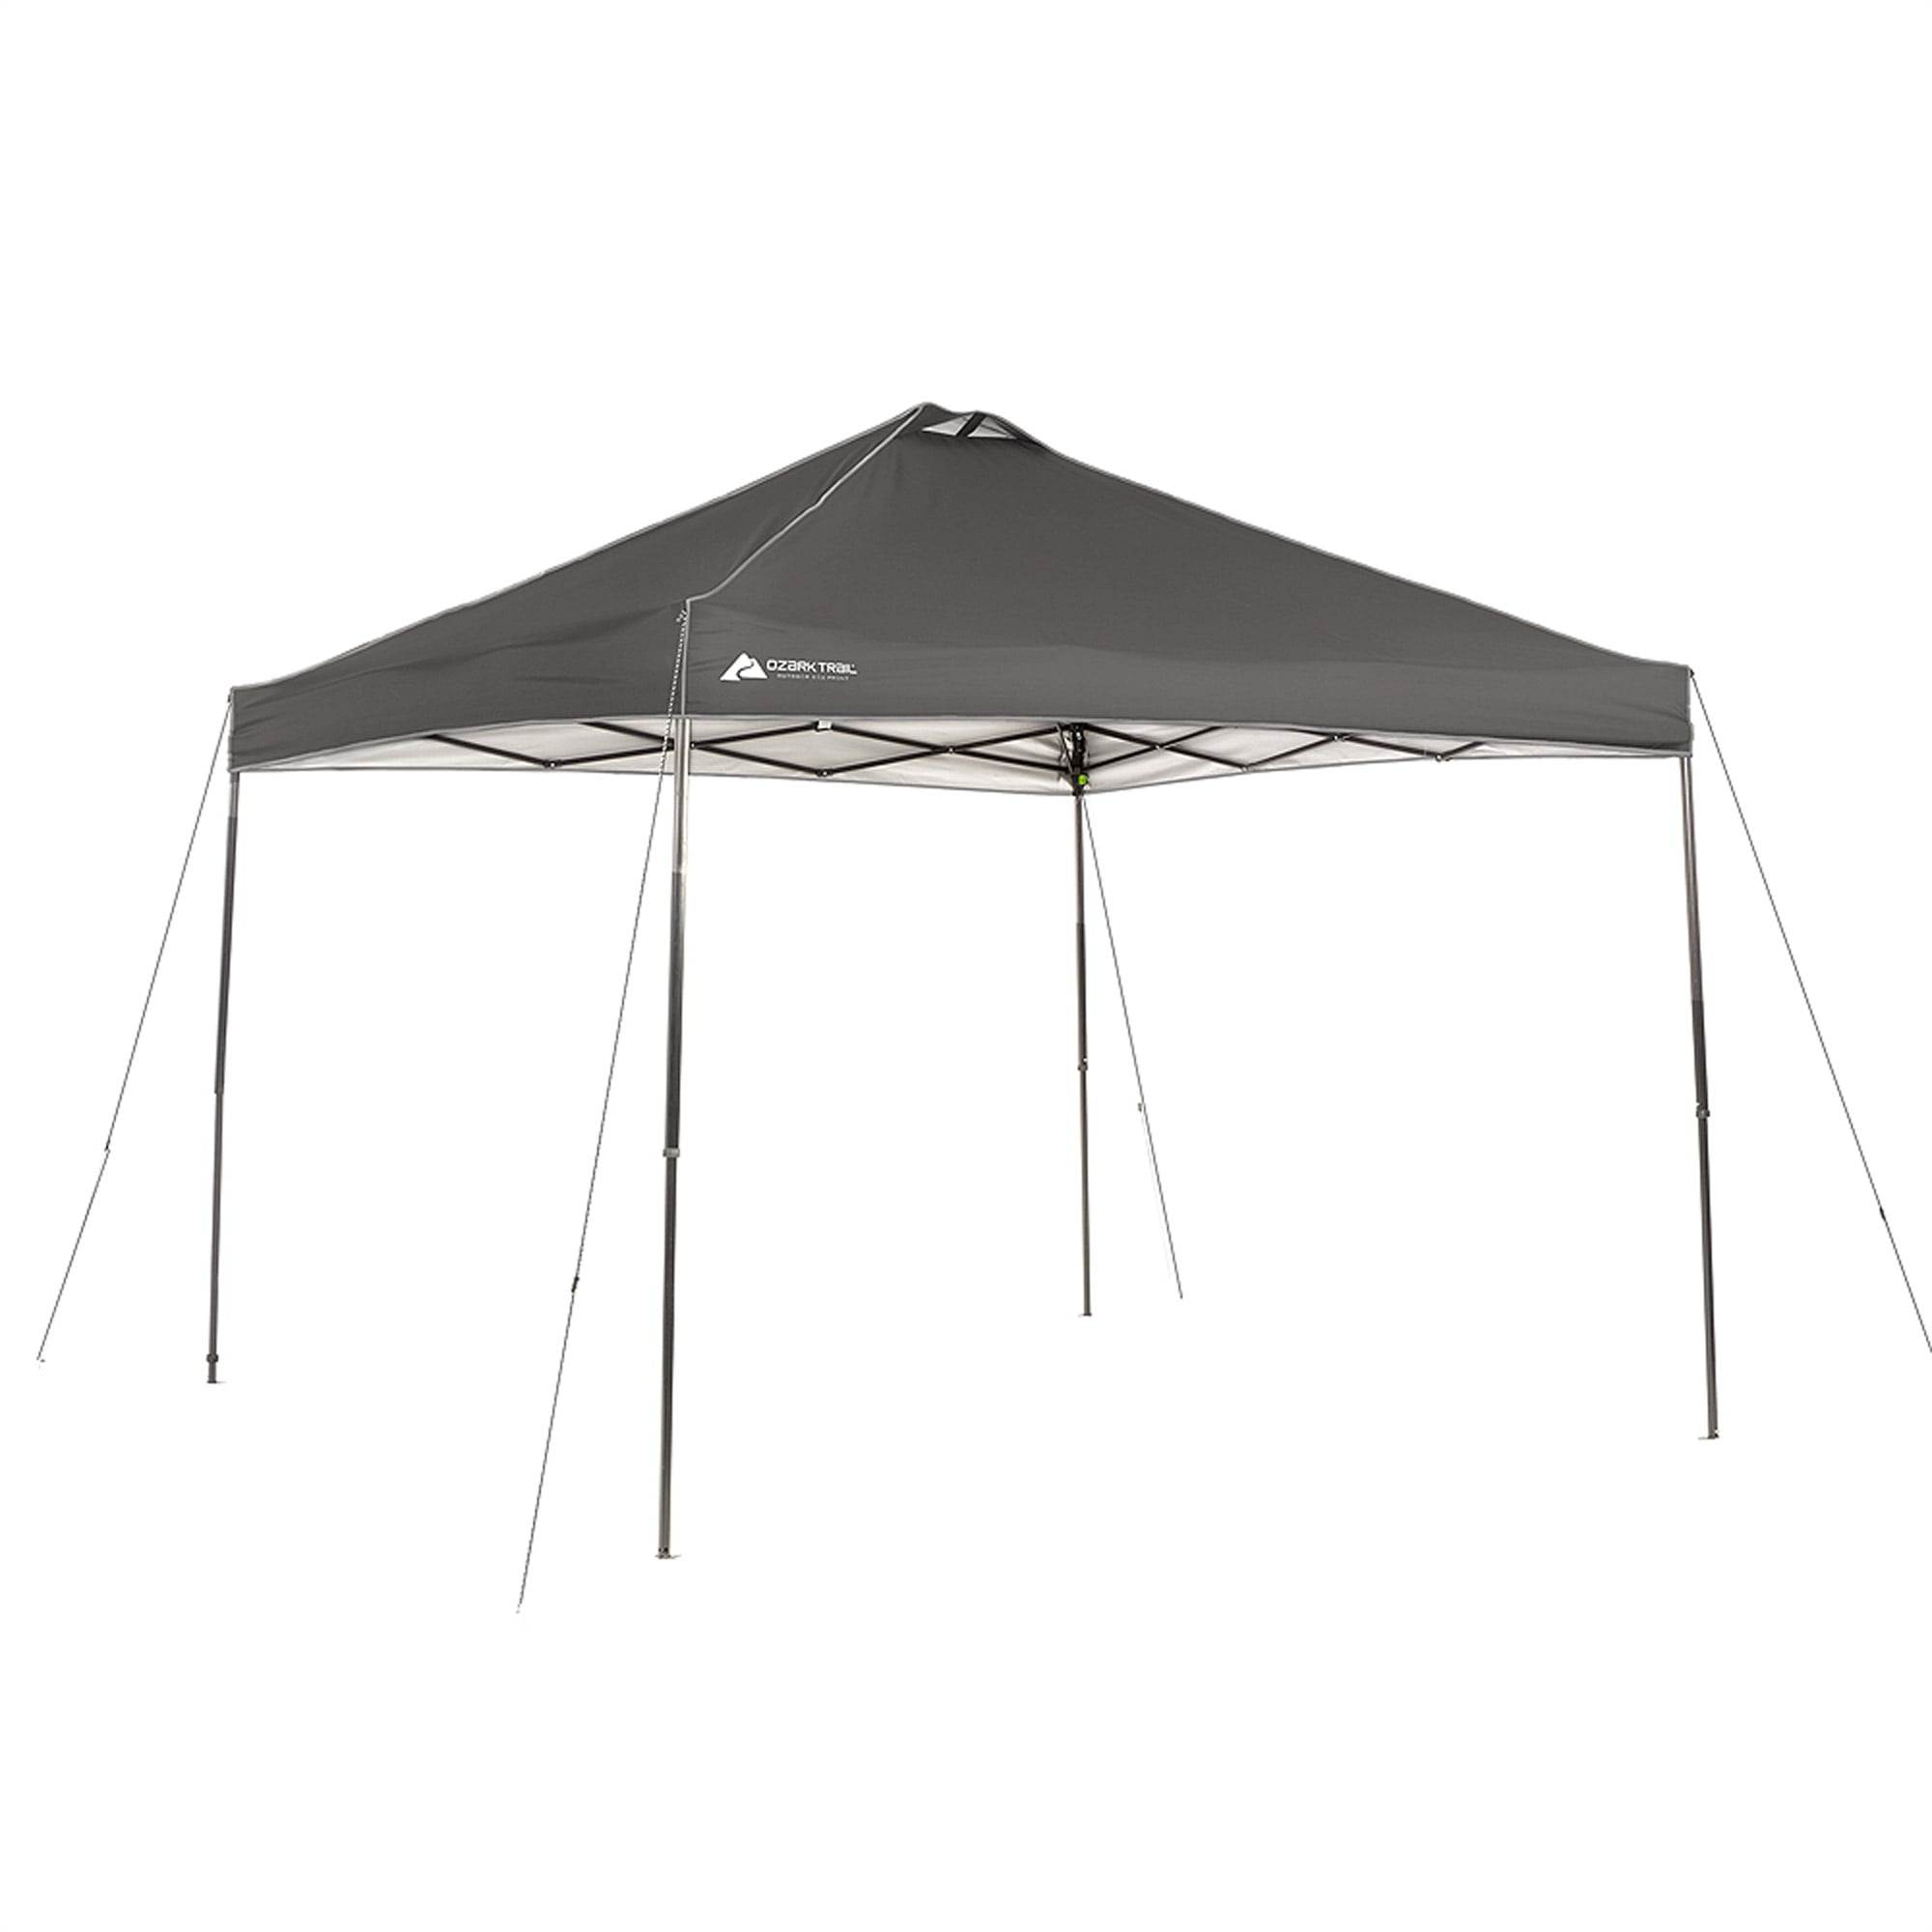 sc 1 st  Walmart : 10x10 canopy replacement top - memphite.com